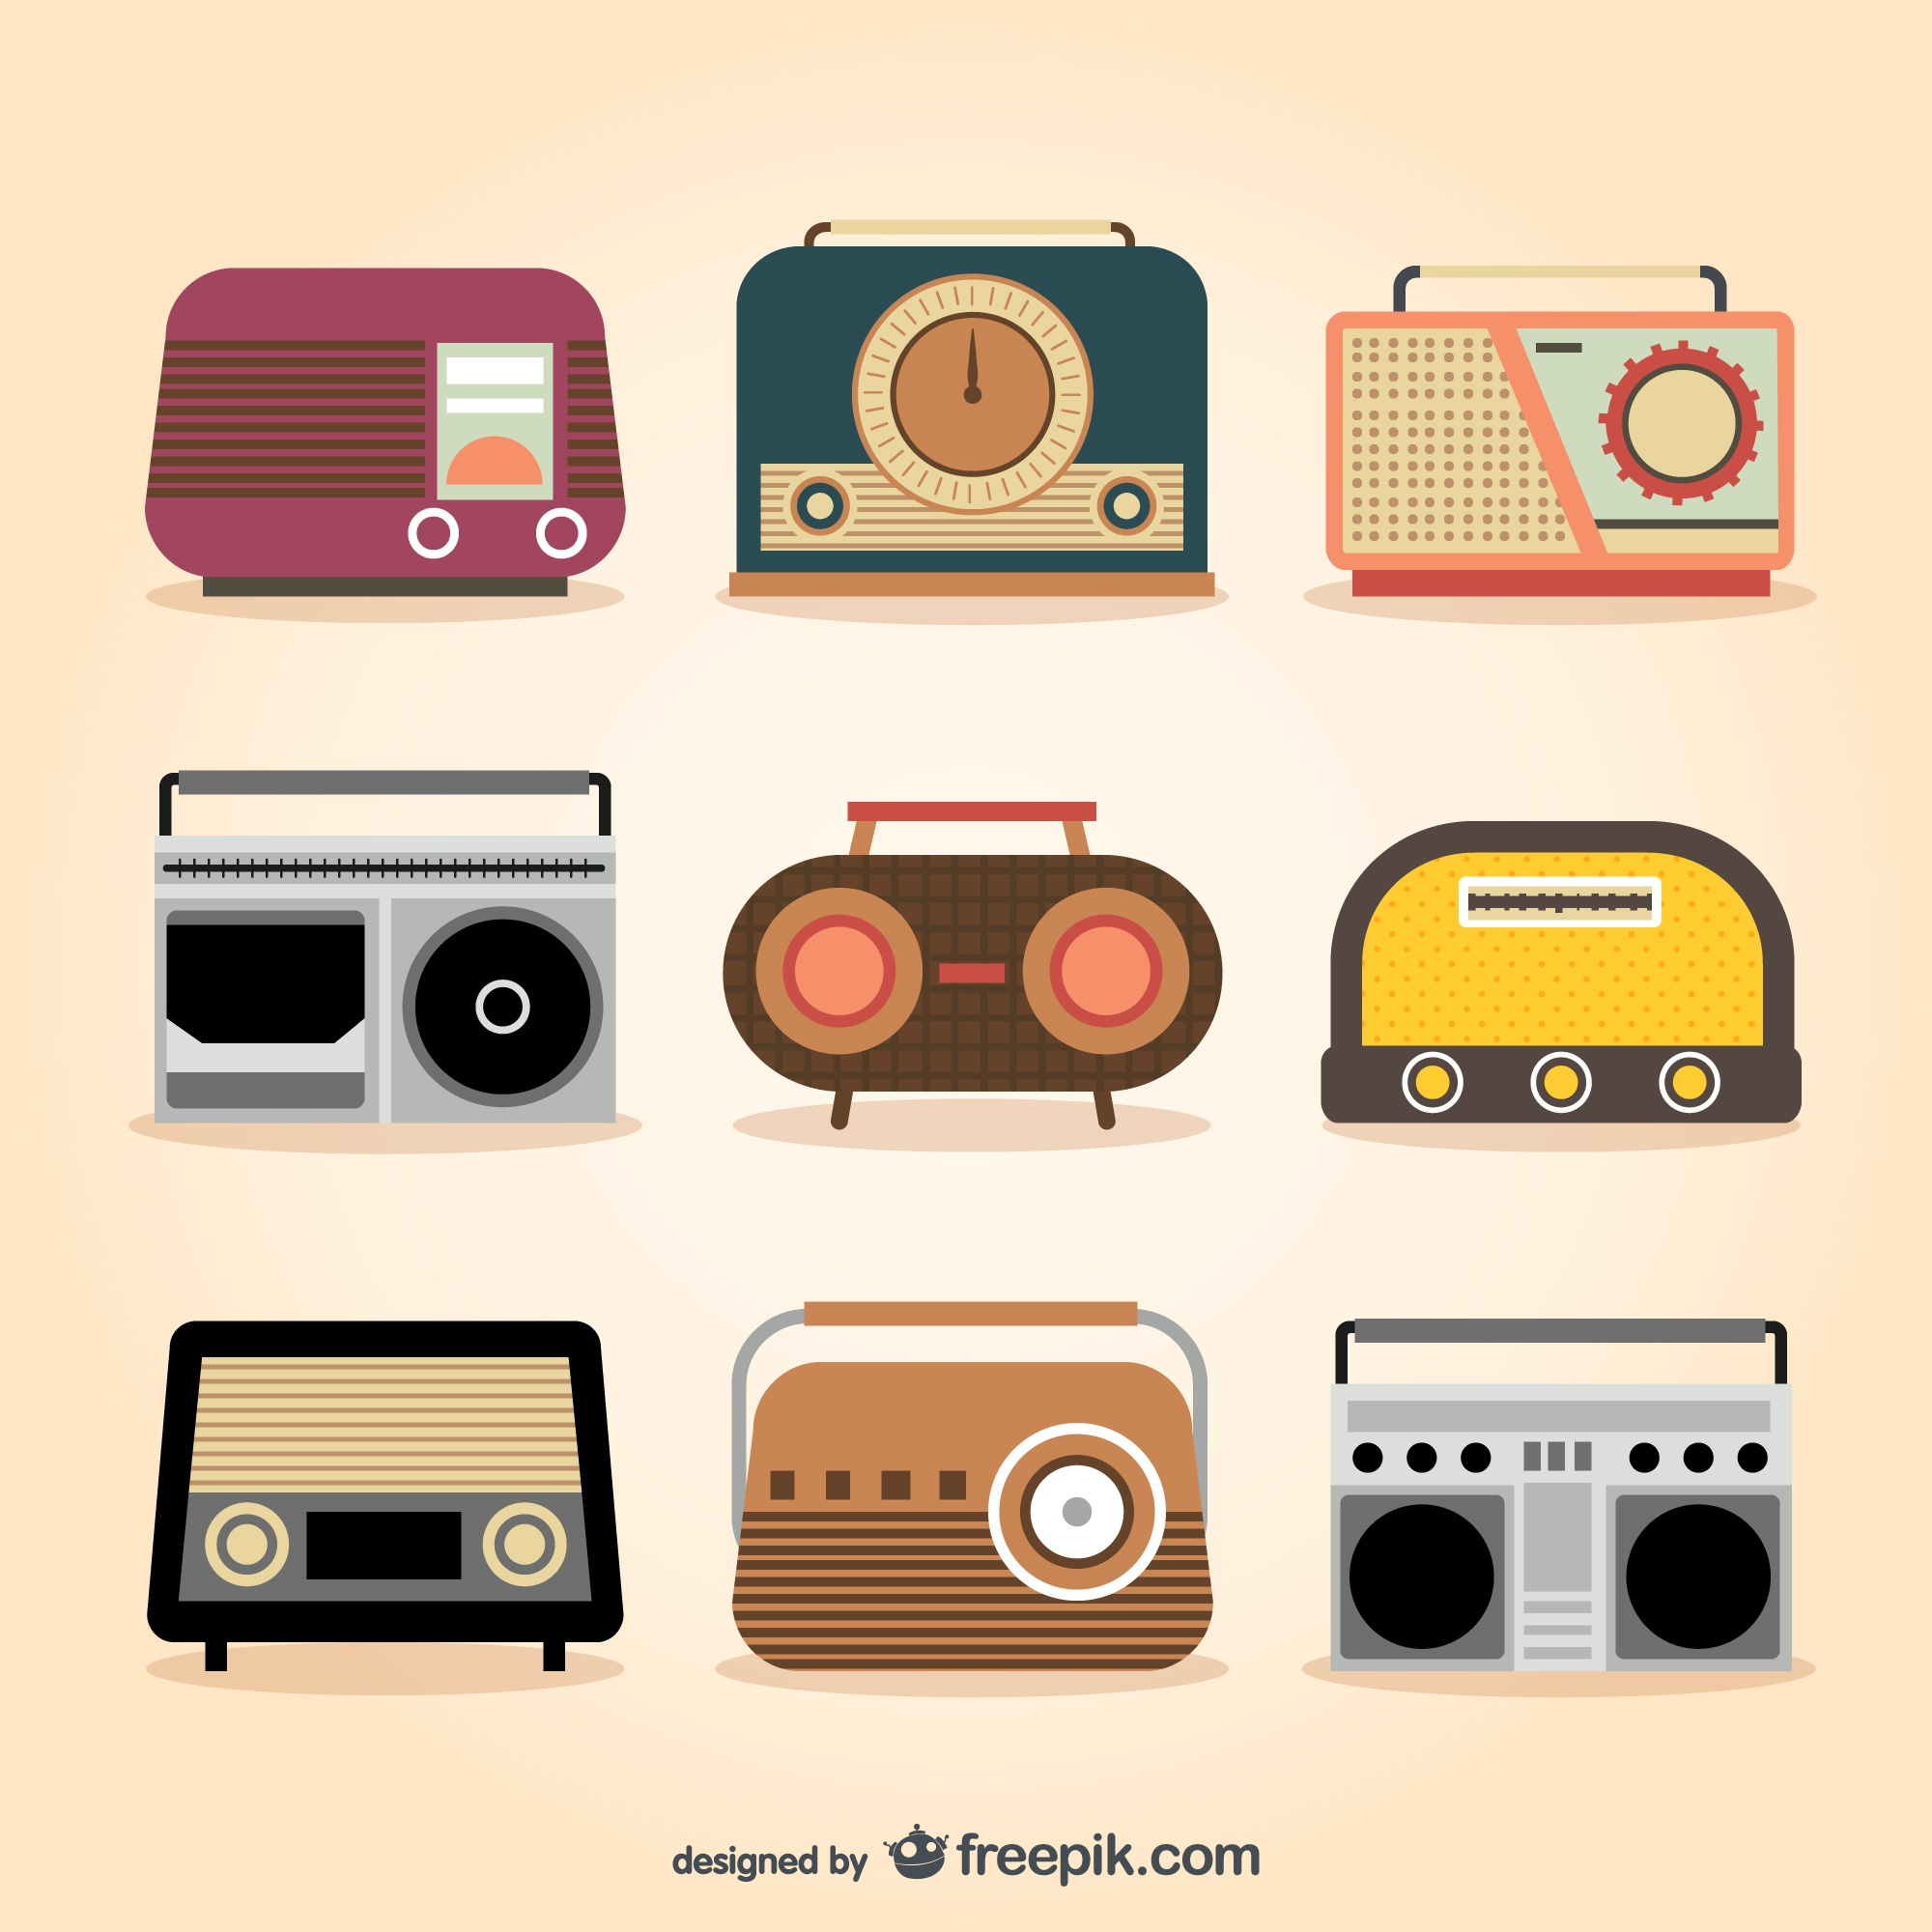 Aparatos de radio Retro